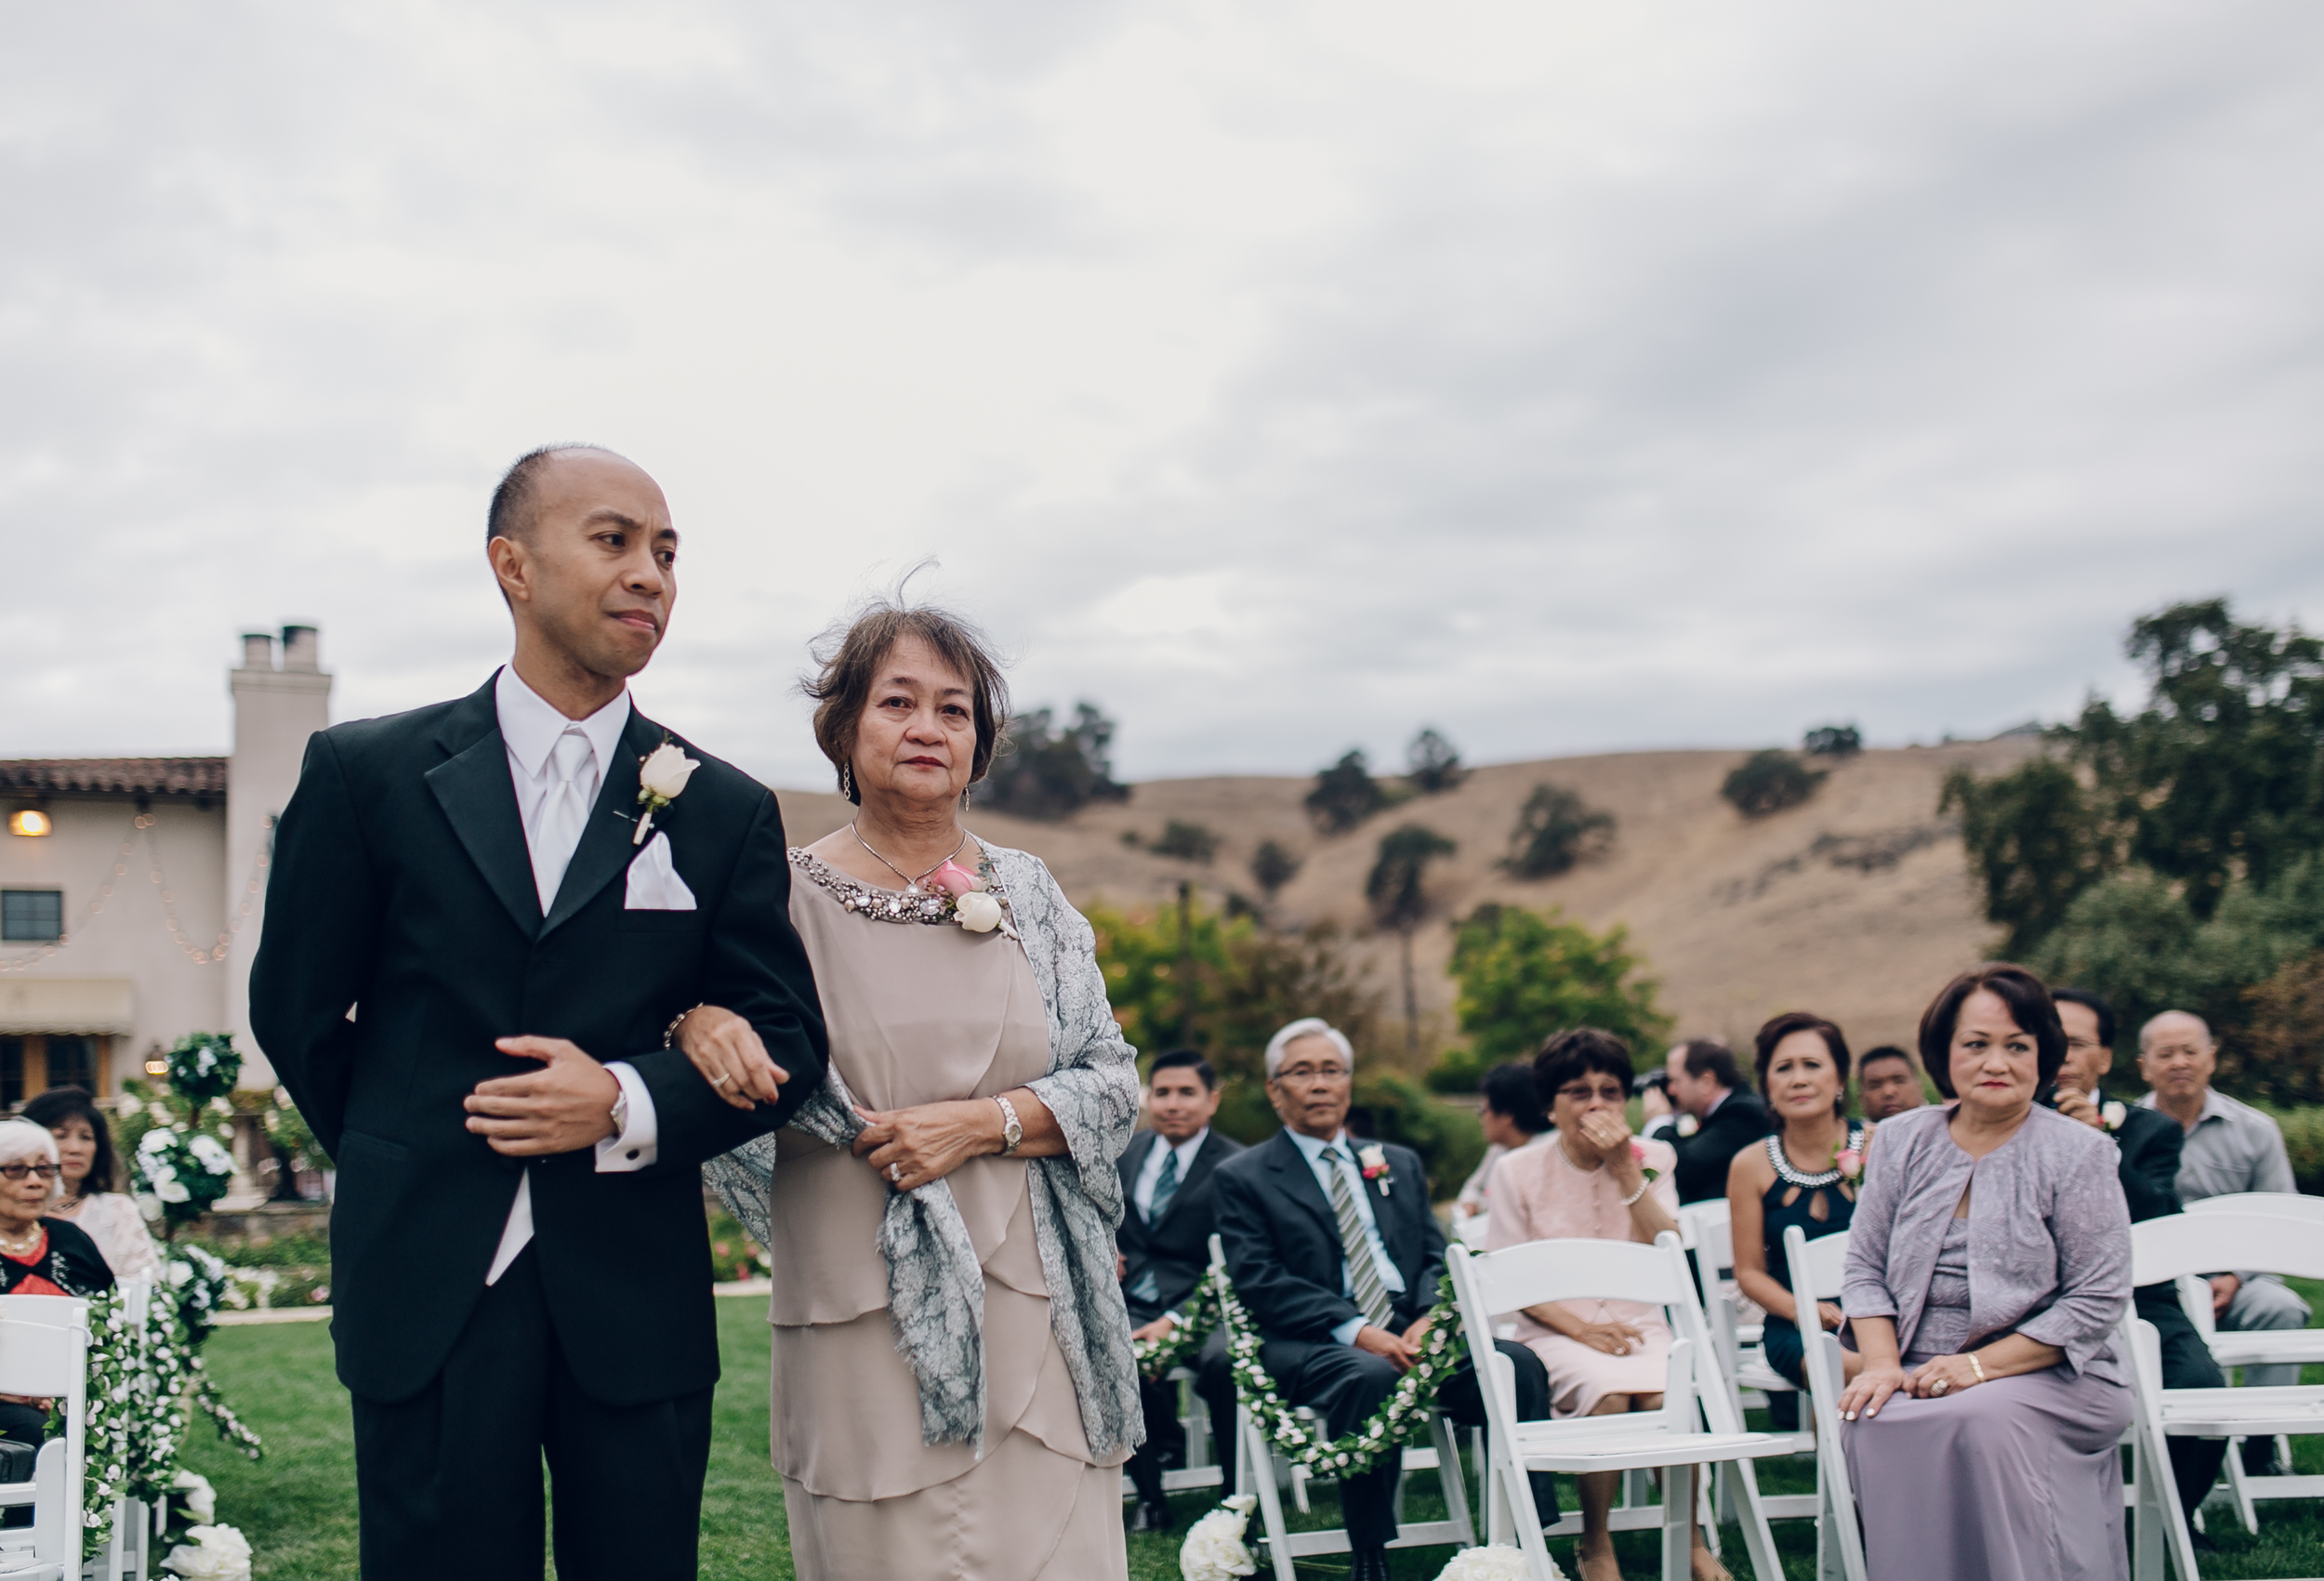 Shiela + Lester's Wedding 9-30-15 647.jpg